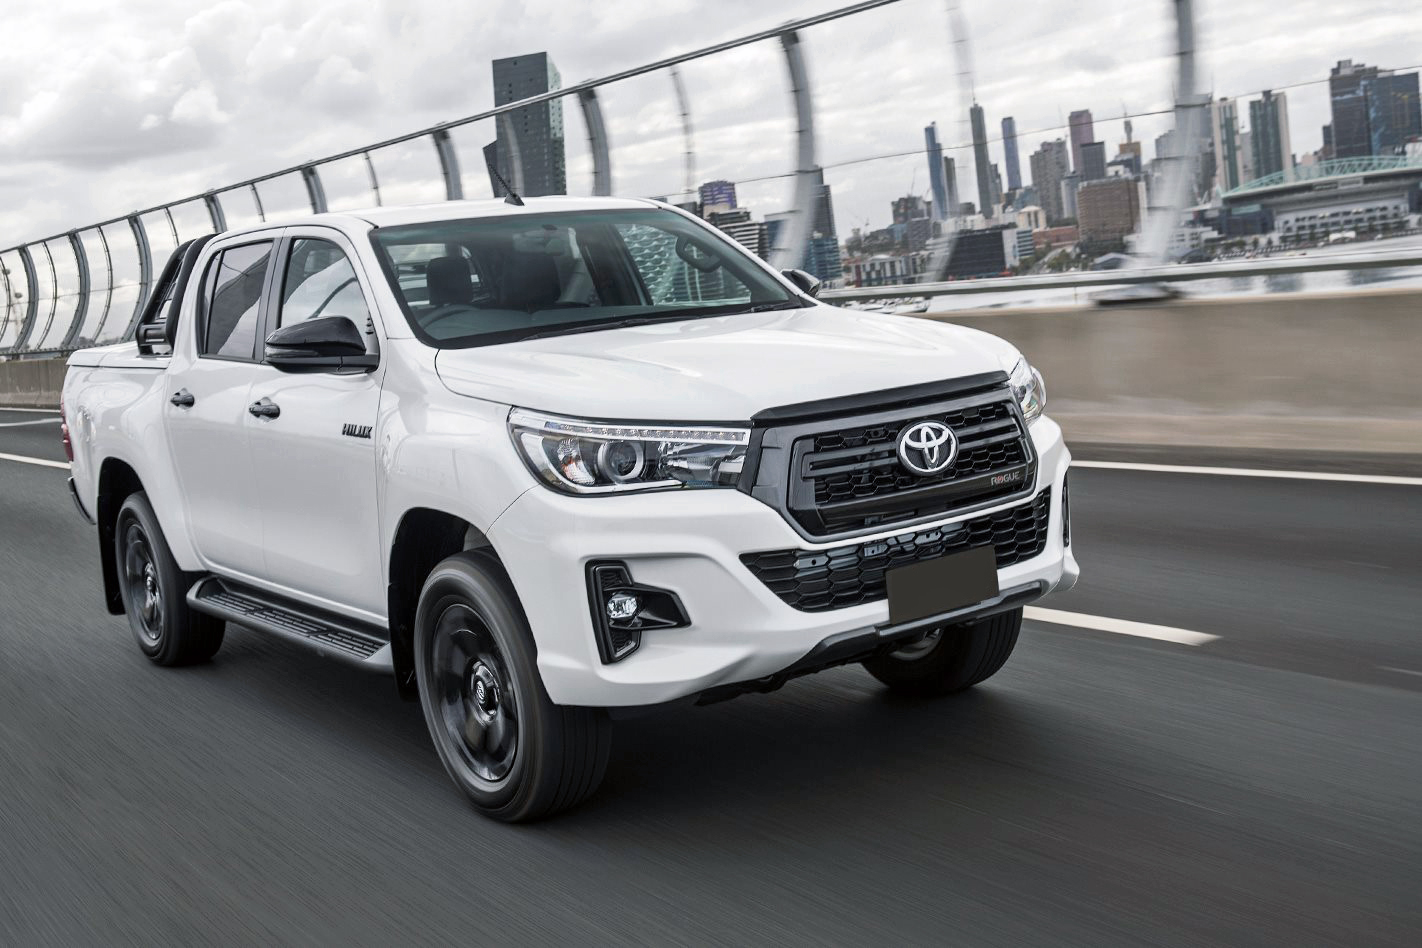 Toyota Sa To Debut Hilux S Fresh Face On Special New Model